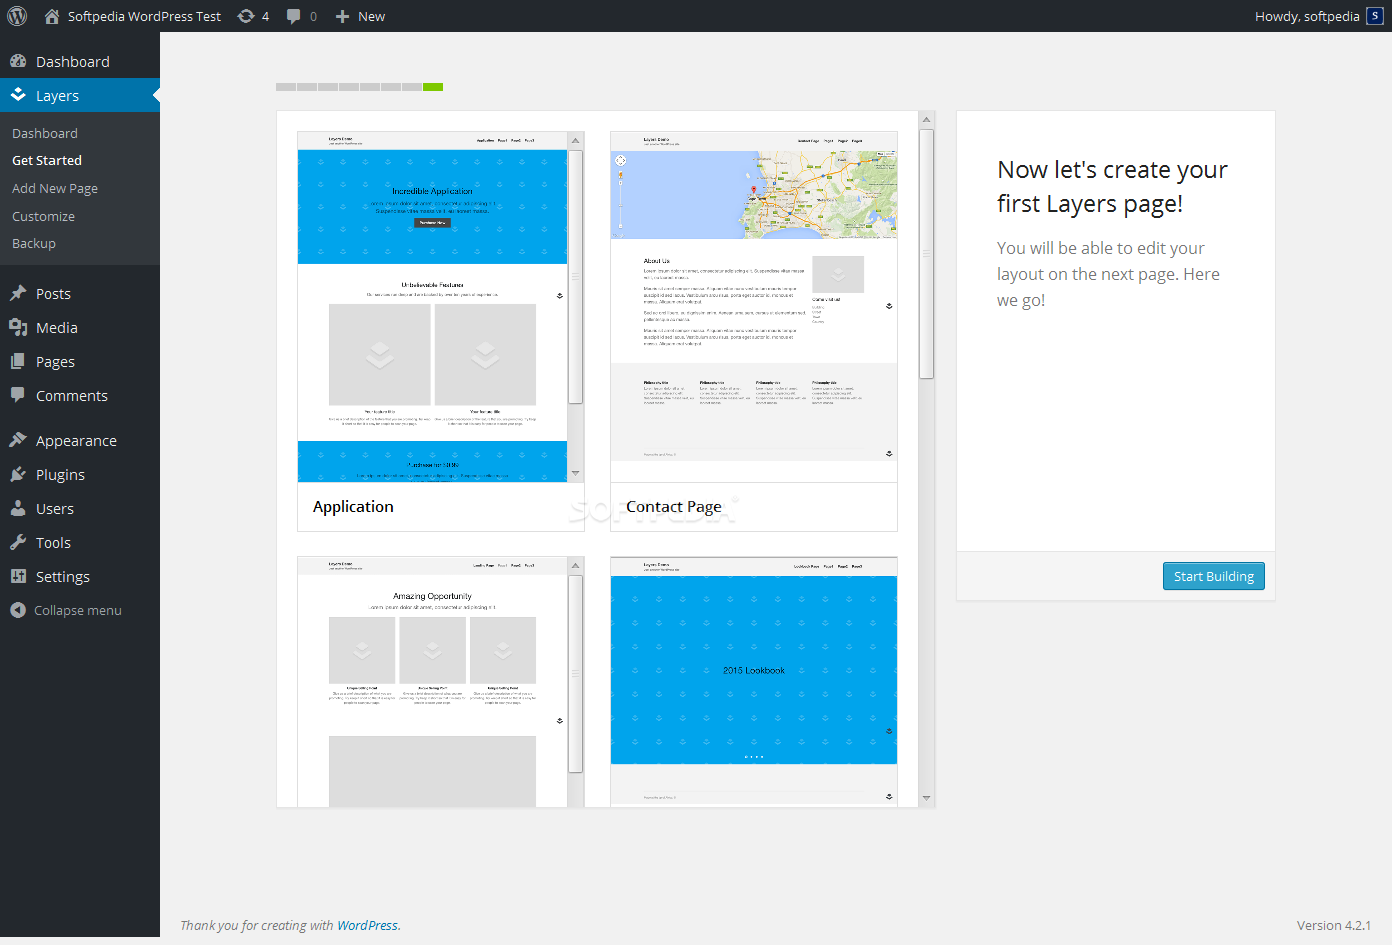 Layers - Adding new pages is very easy using the pre-built Layers page templates